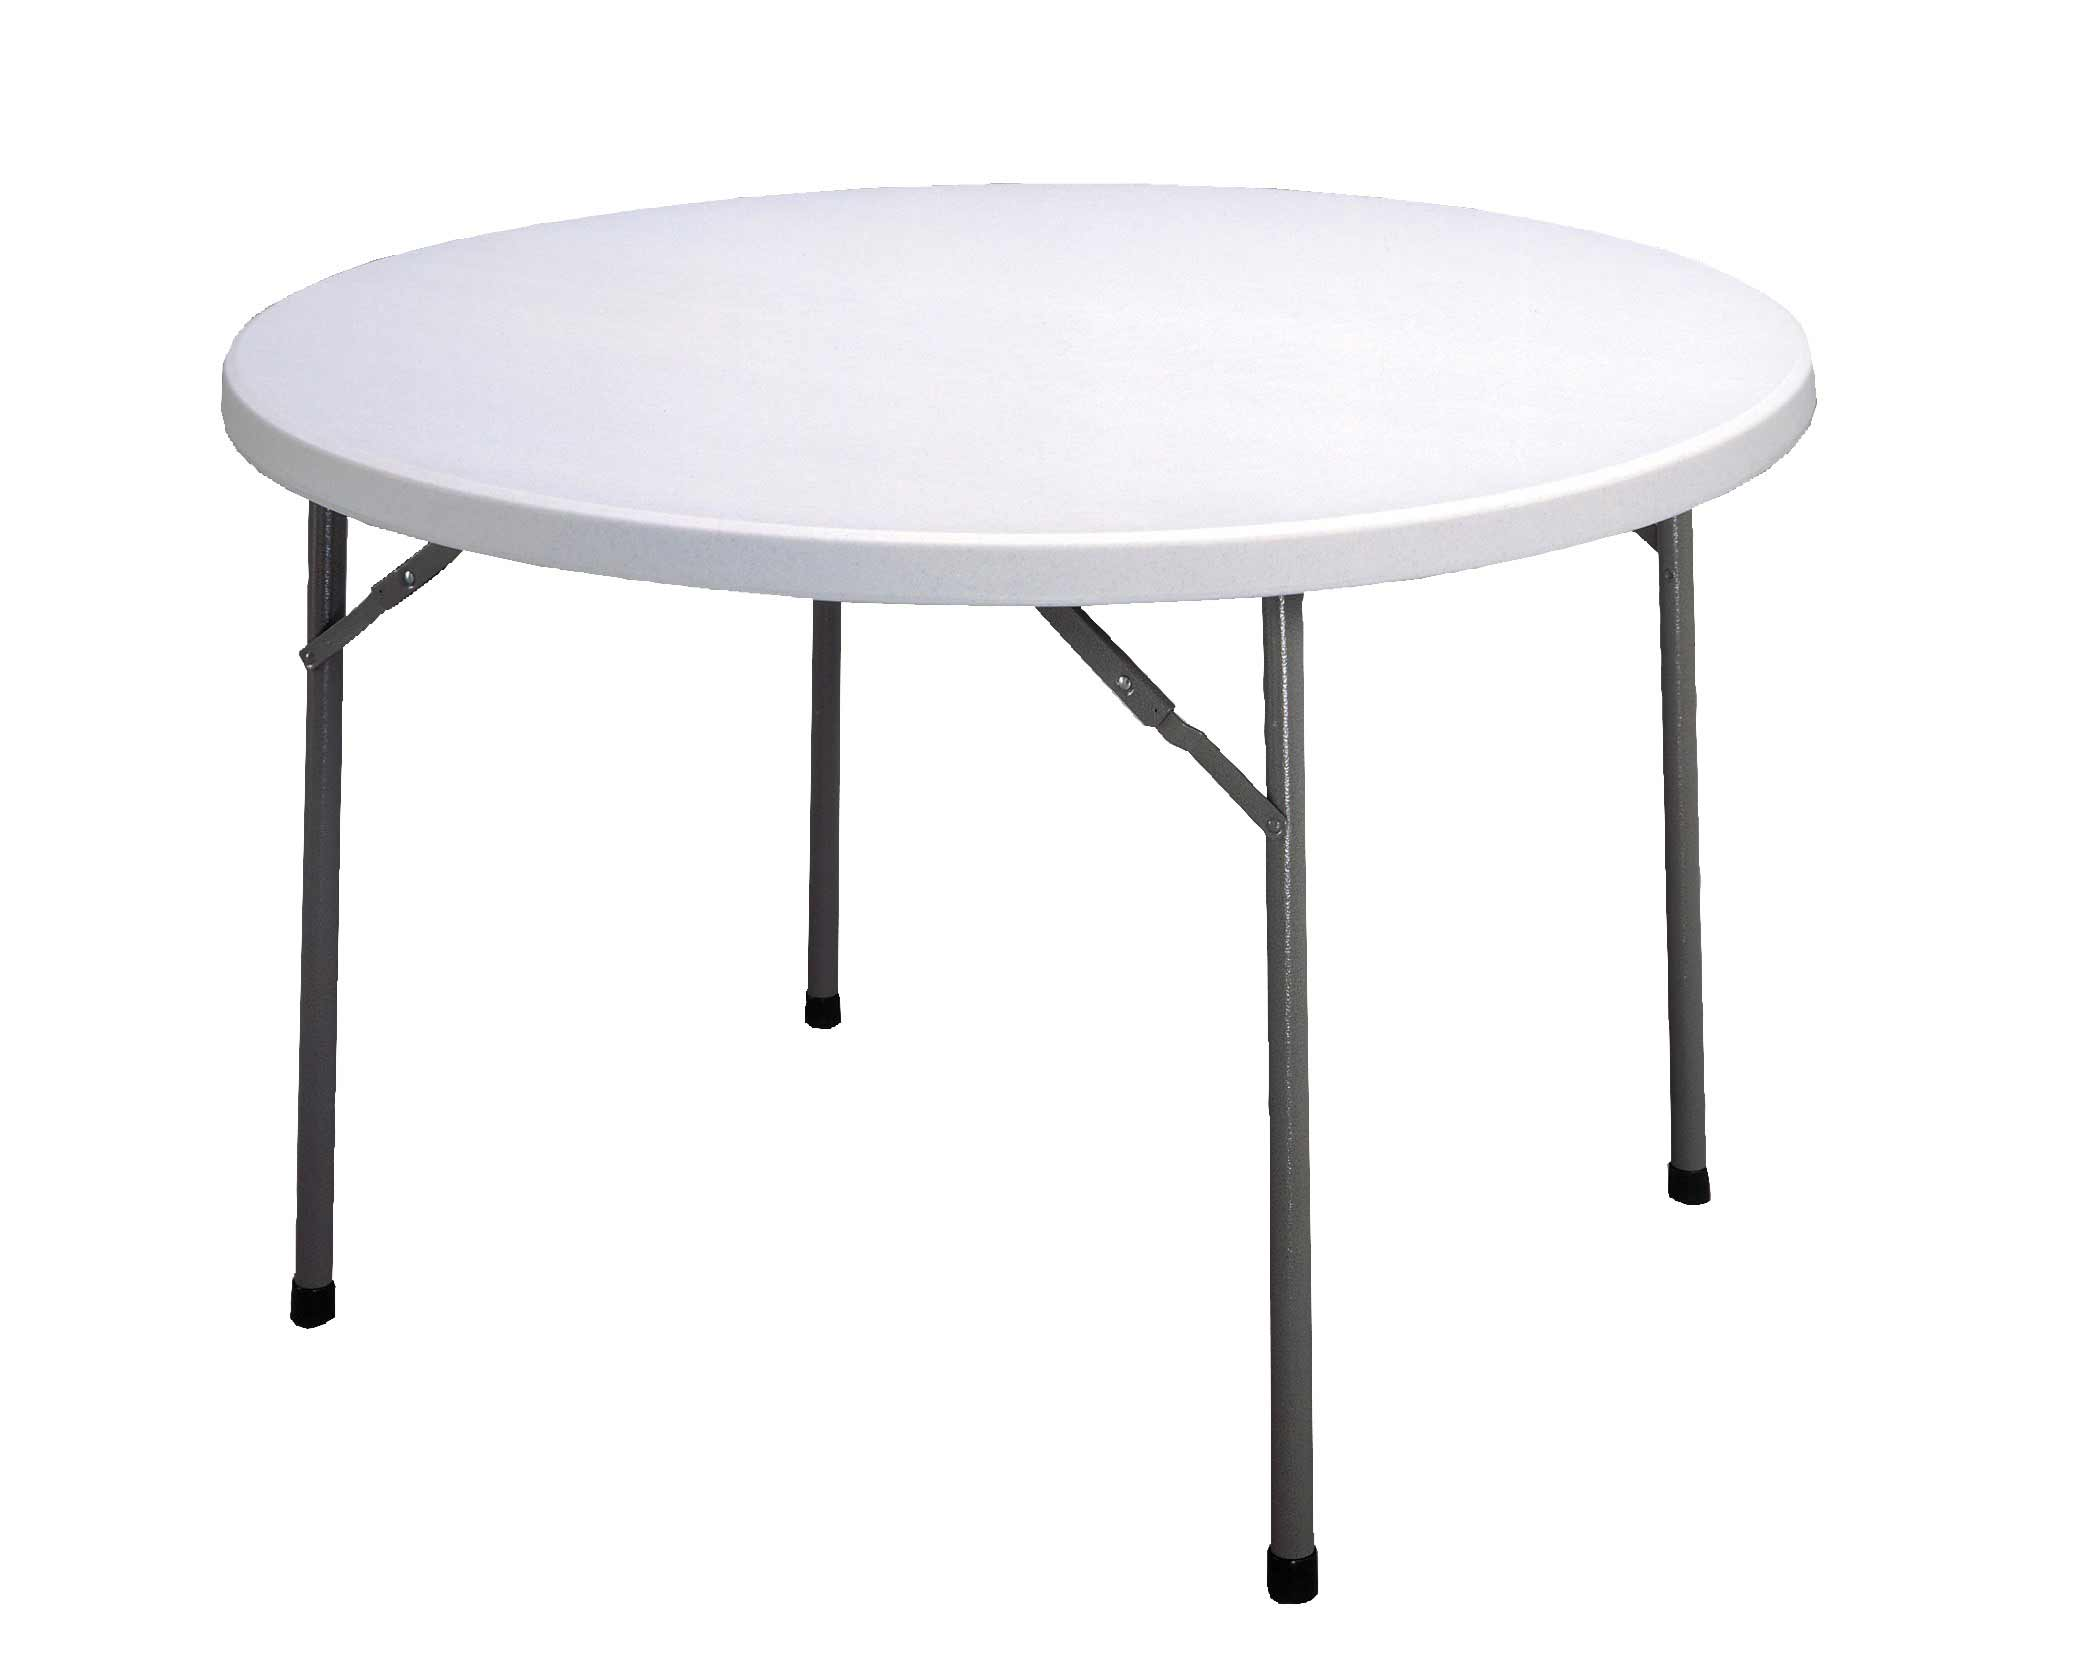 Folding top dining table feel the home - Foldable dining table ...